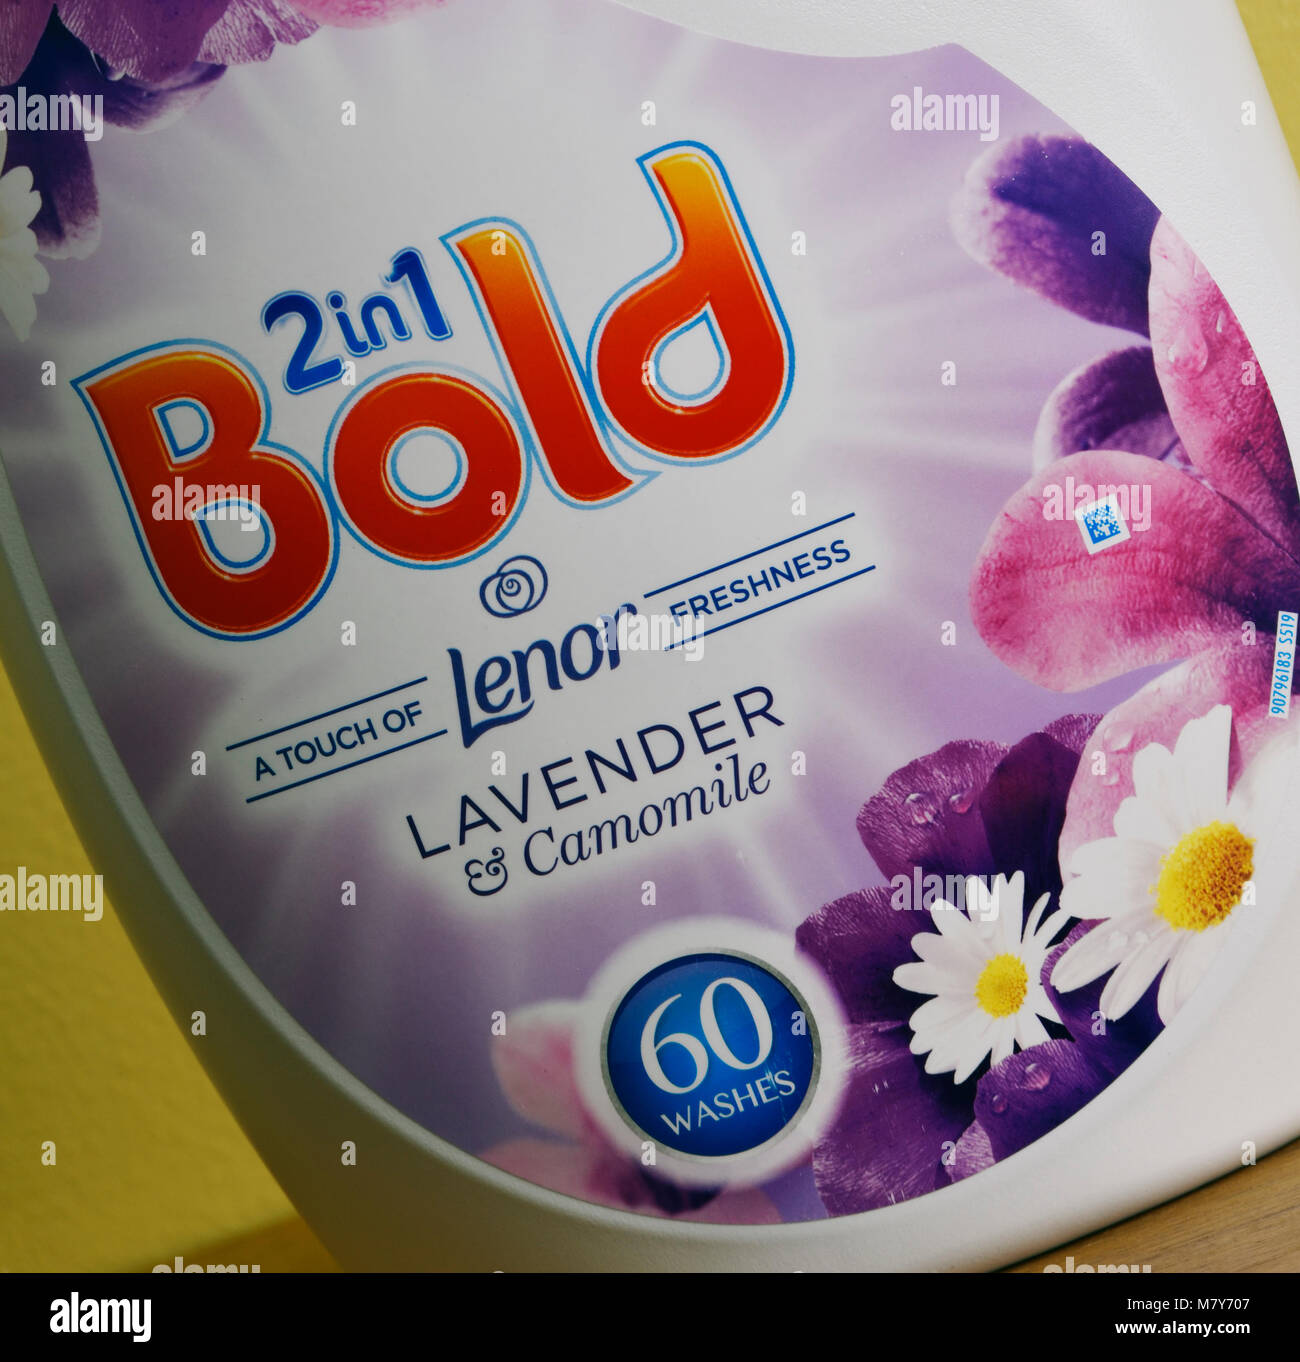 Detail of label on plastic container of Procter and Gamble 2 in 1 Bold biological laundry detergent. - Stock Image